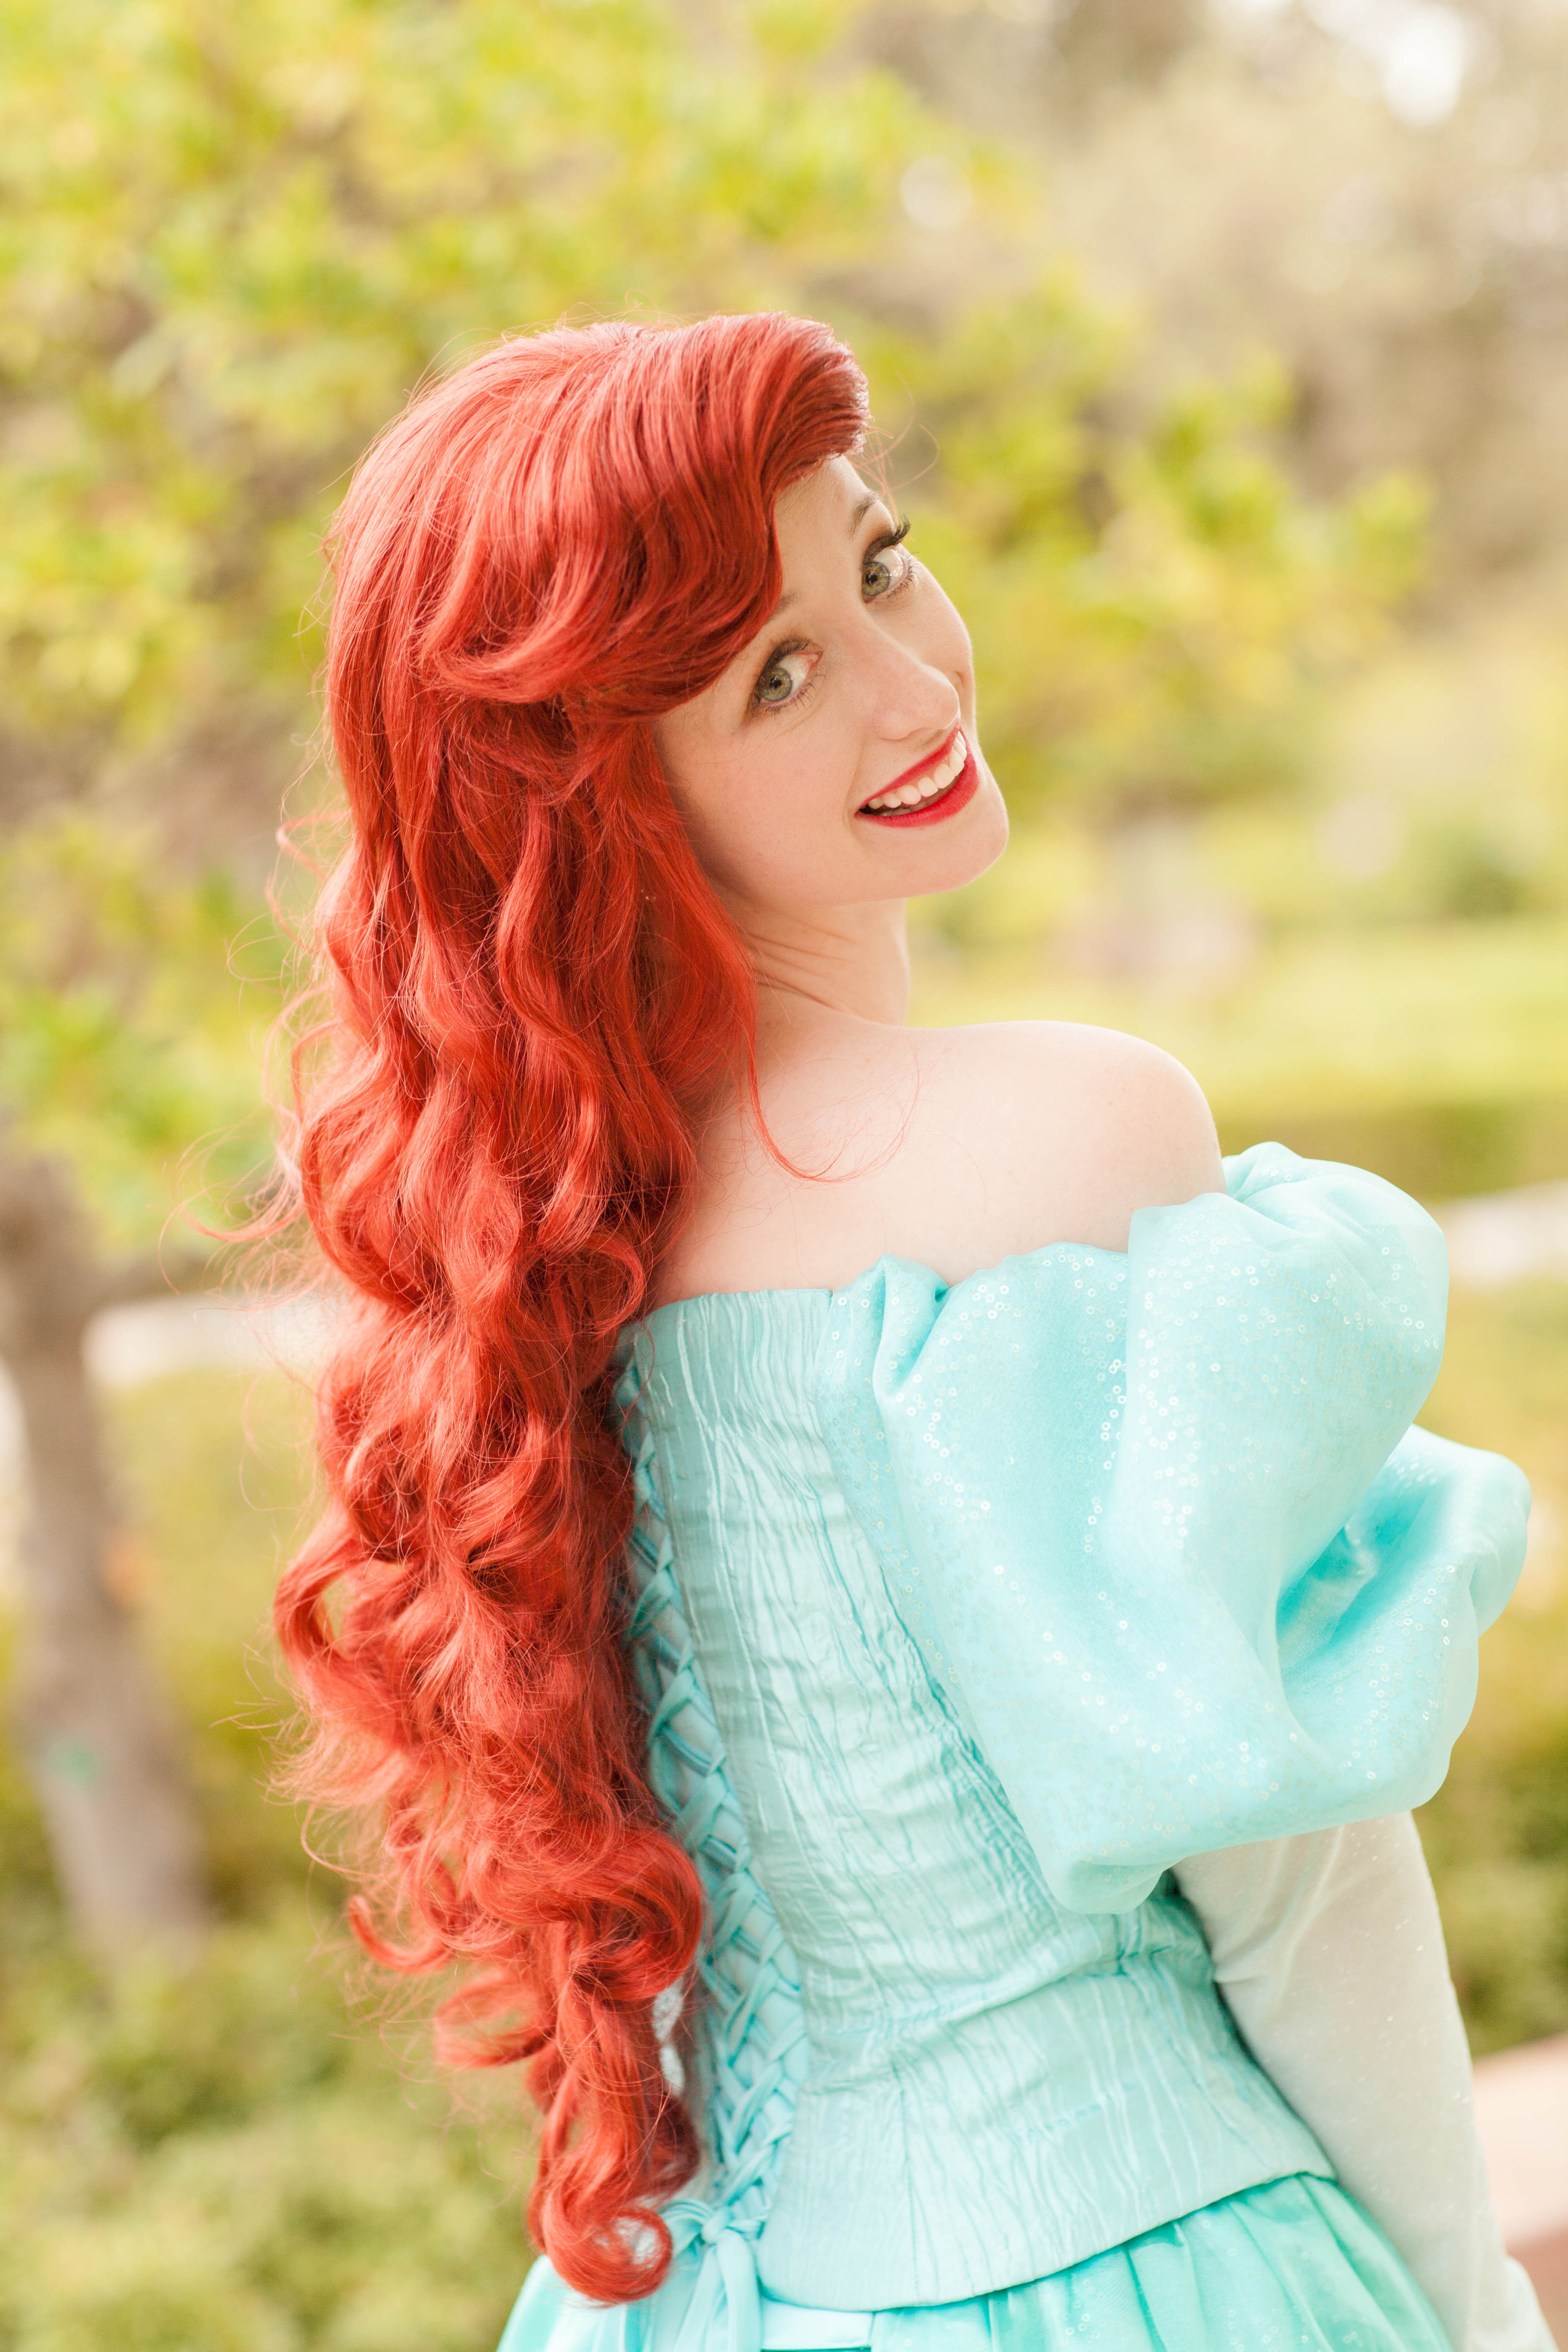 Disney Cosplay: Chey'Anne Harris Shares Her Disney Passion ...